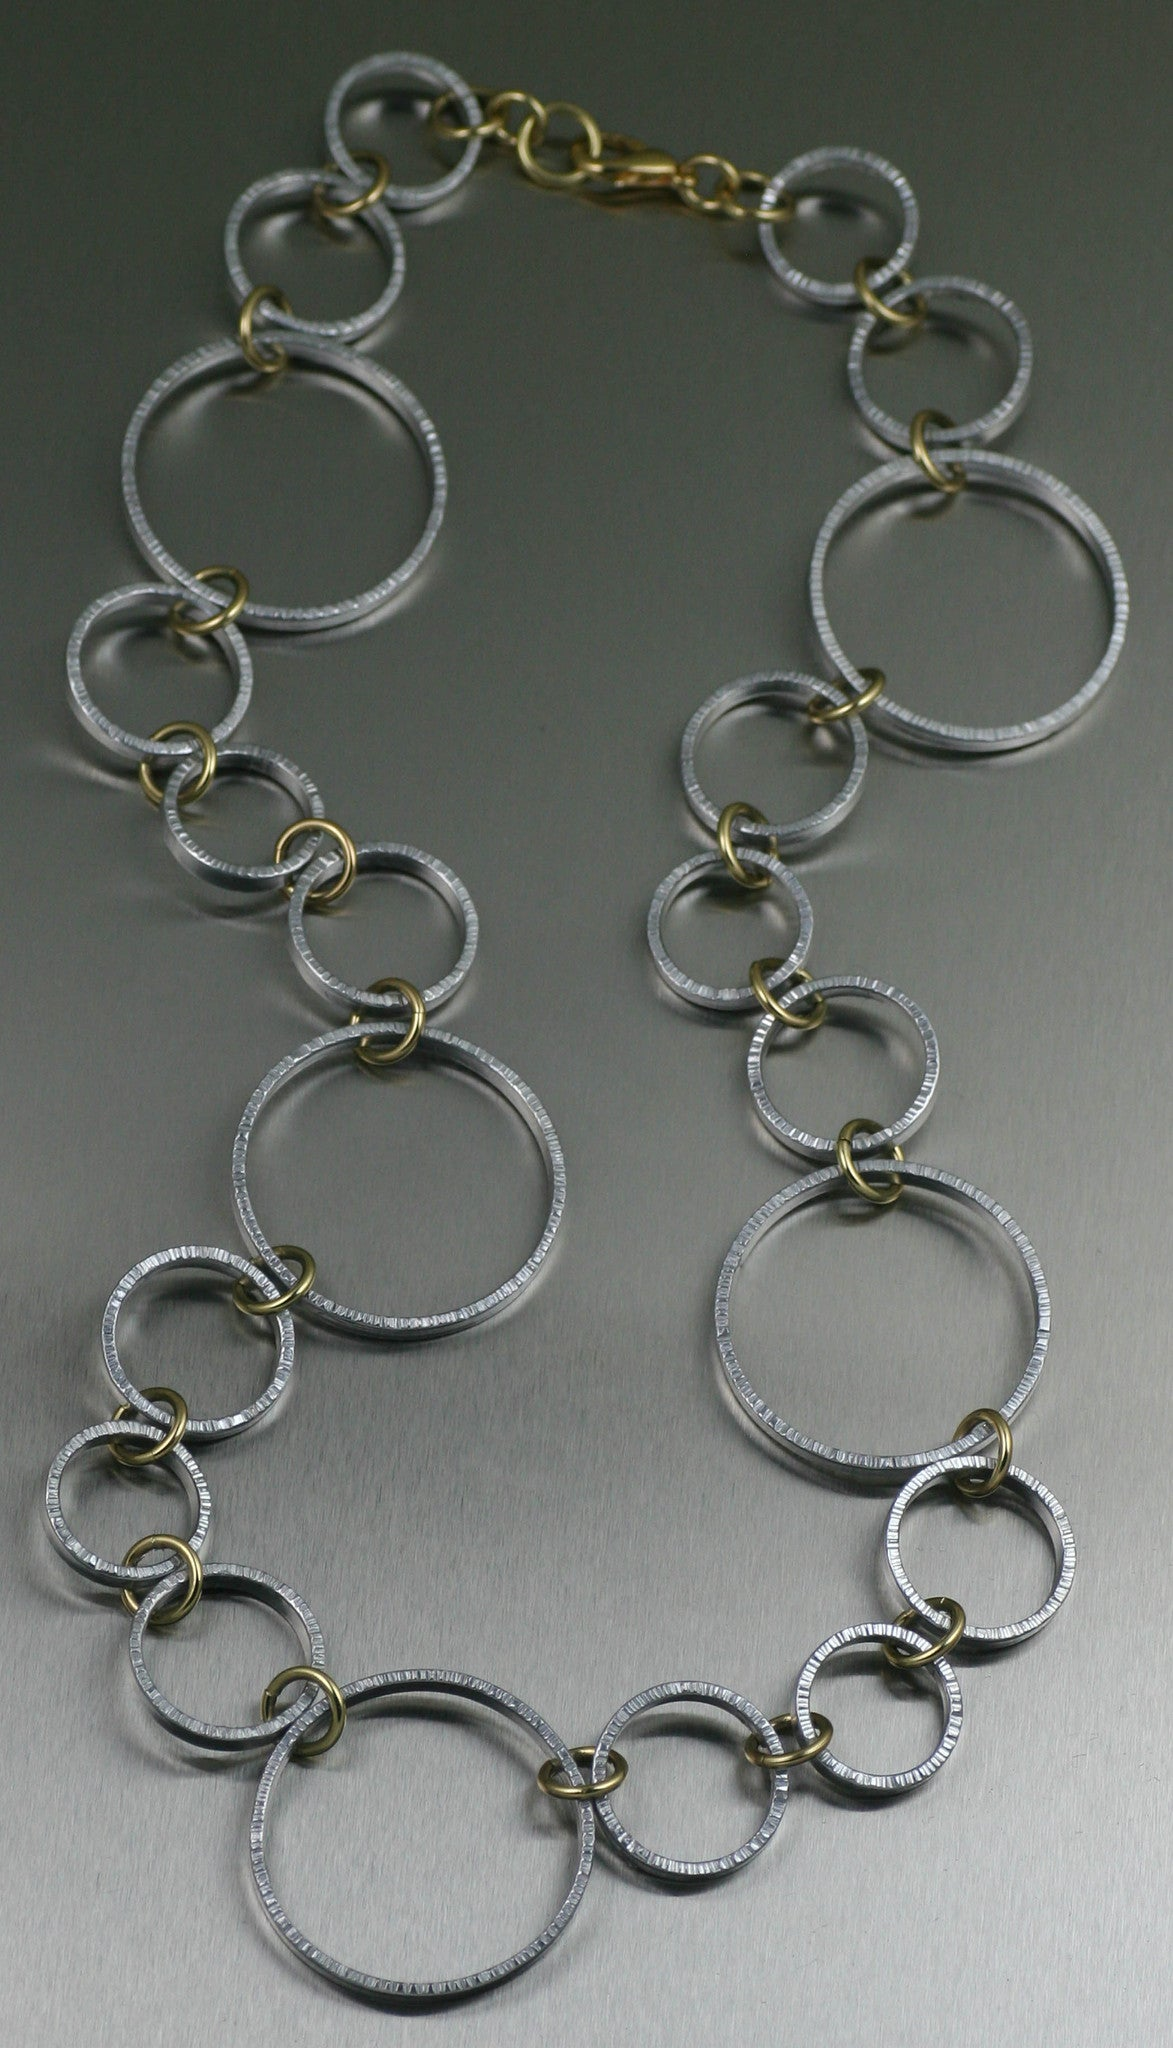 Chased Aluminum Hoop Chain Necklace